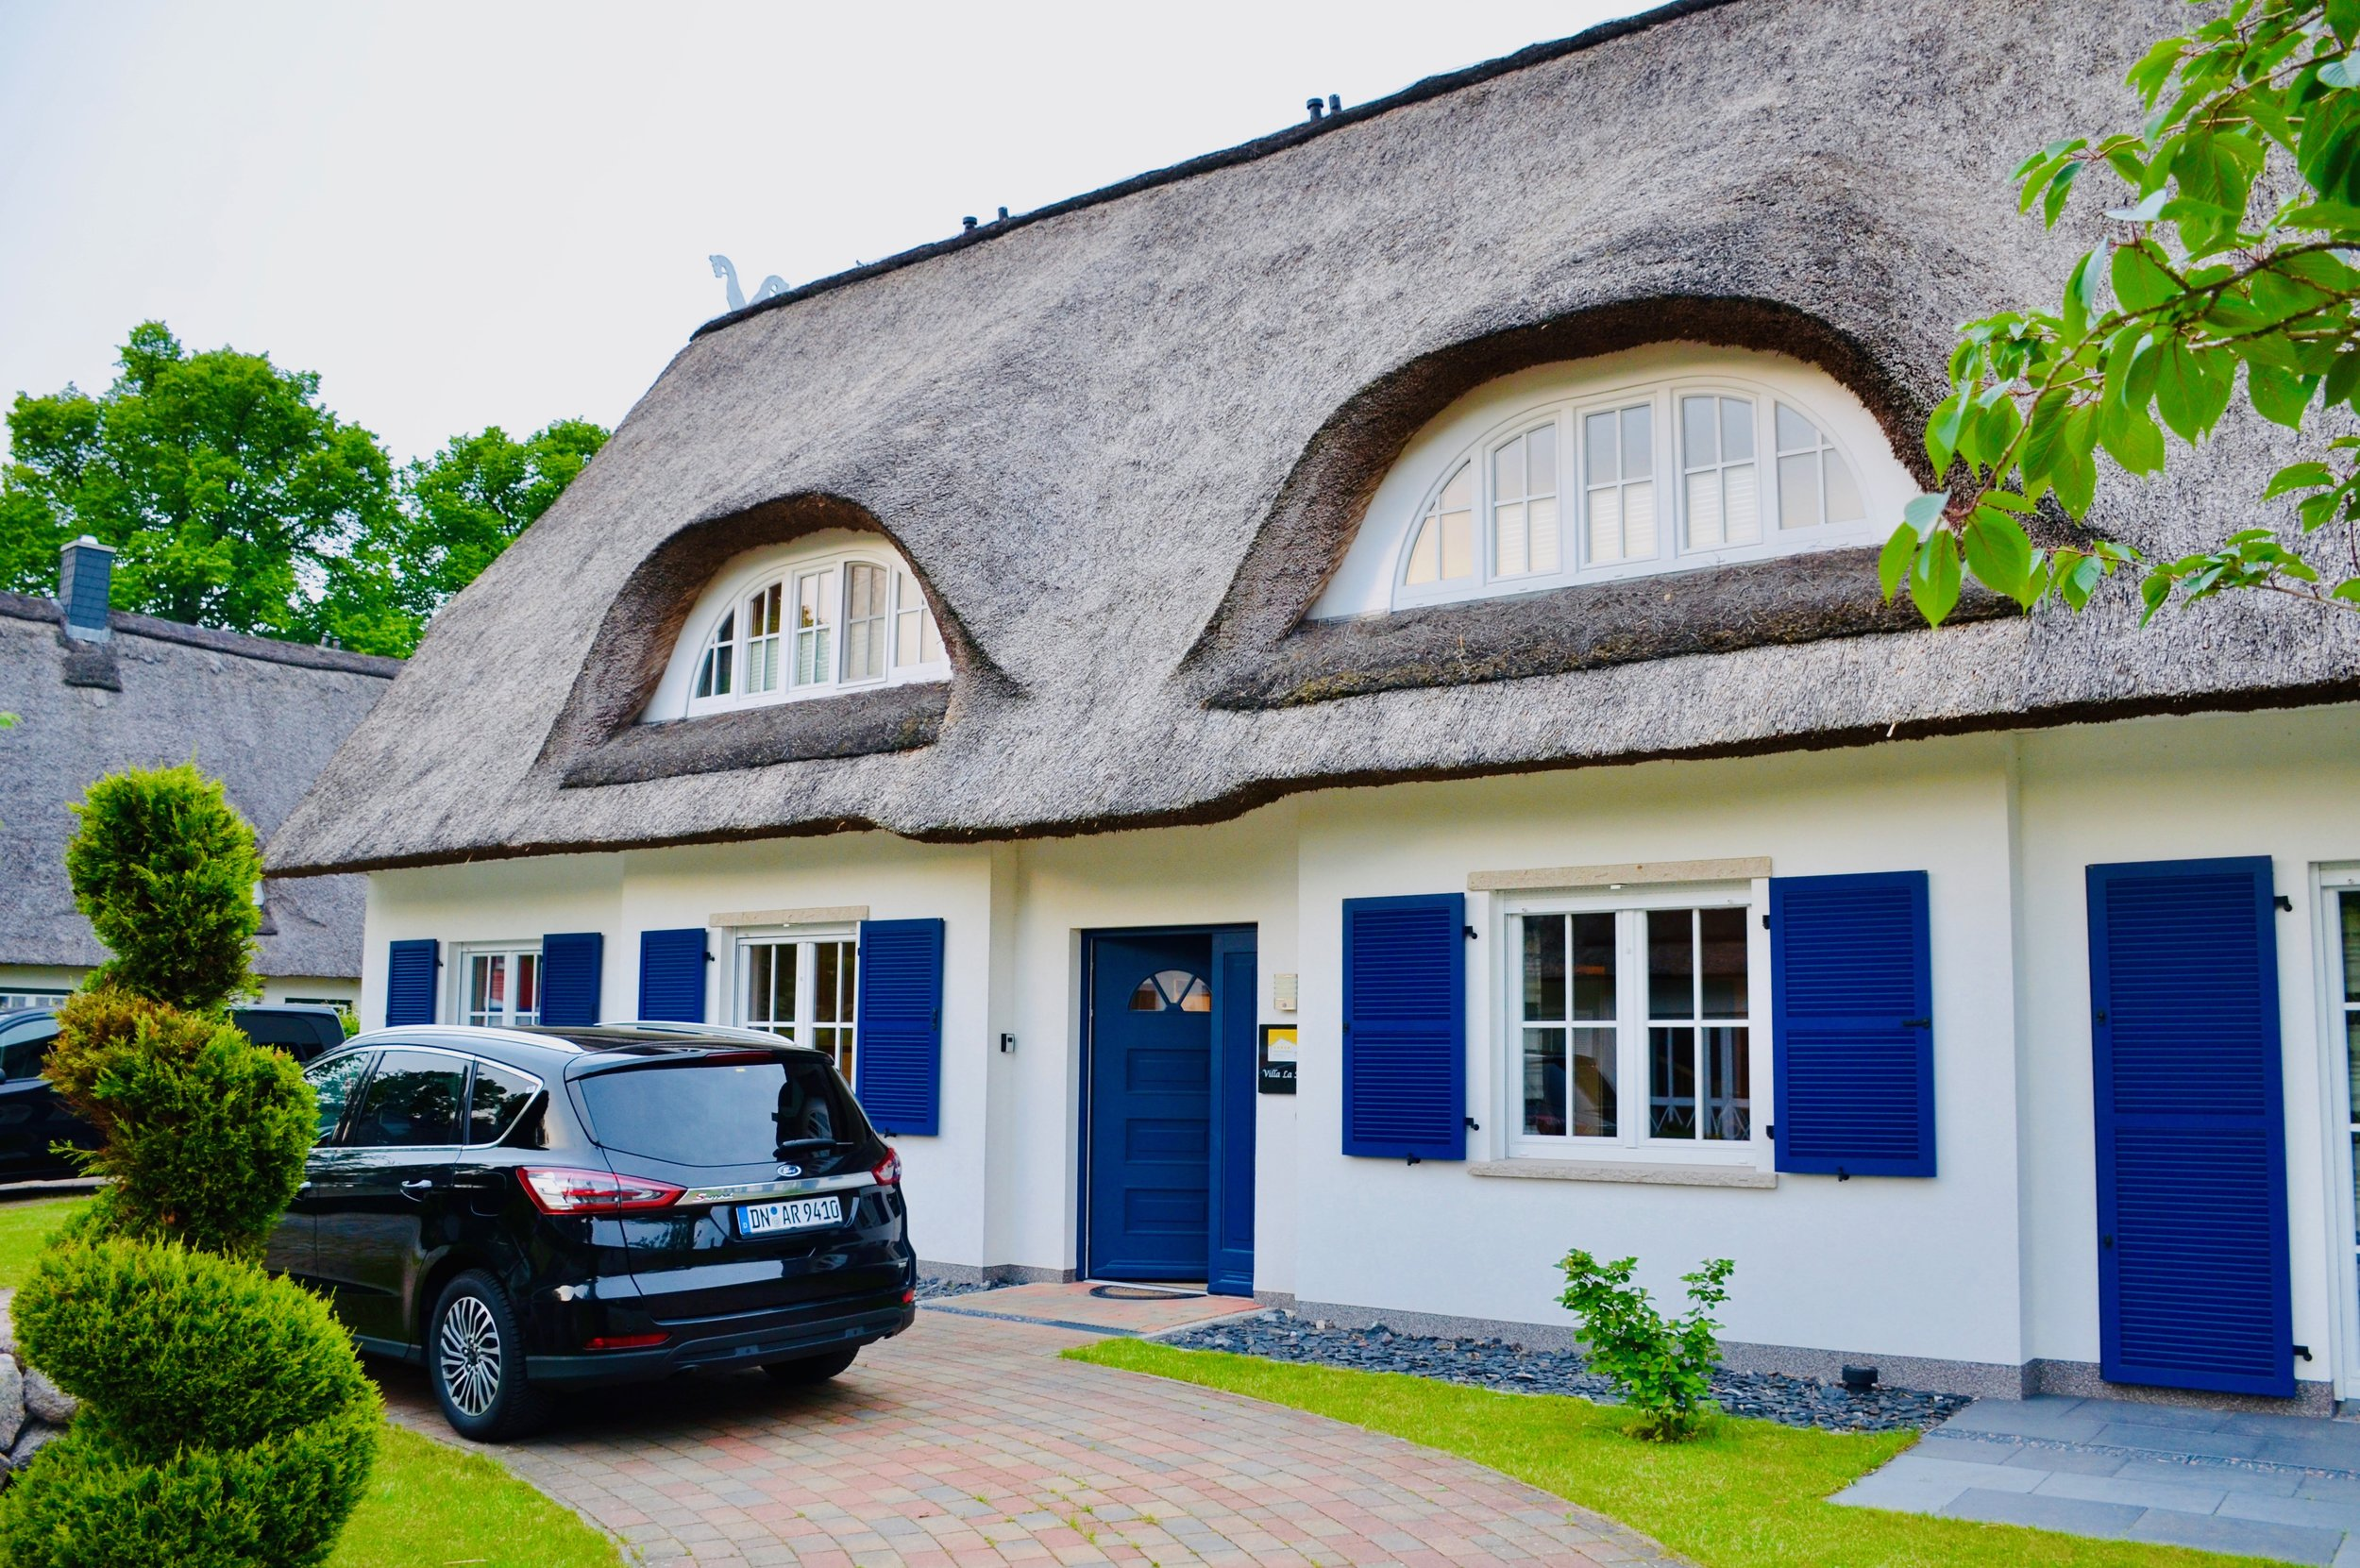 Our thatched-roof house in Germany!